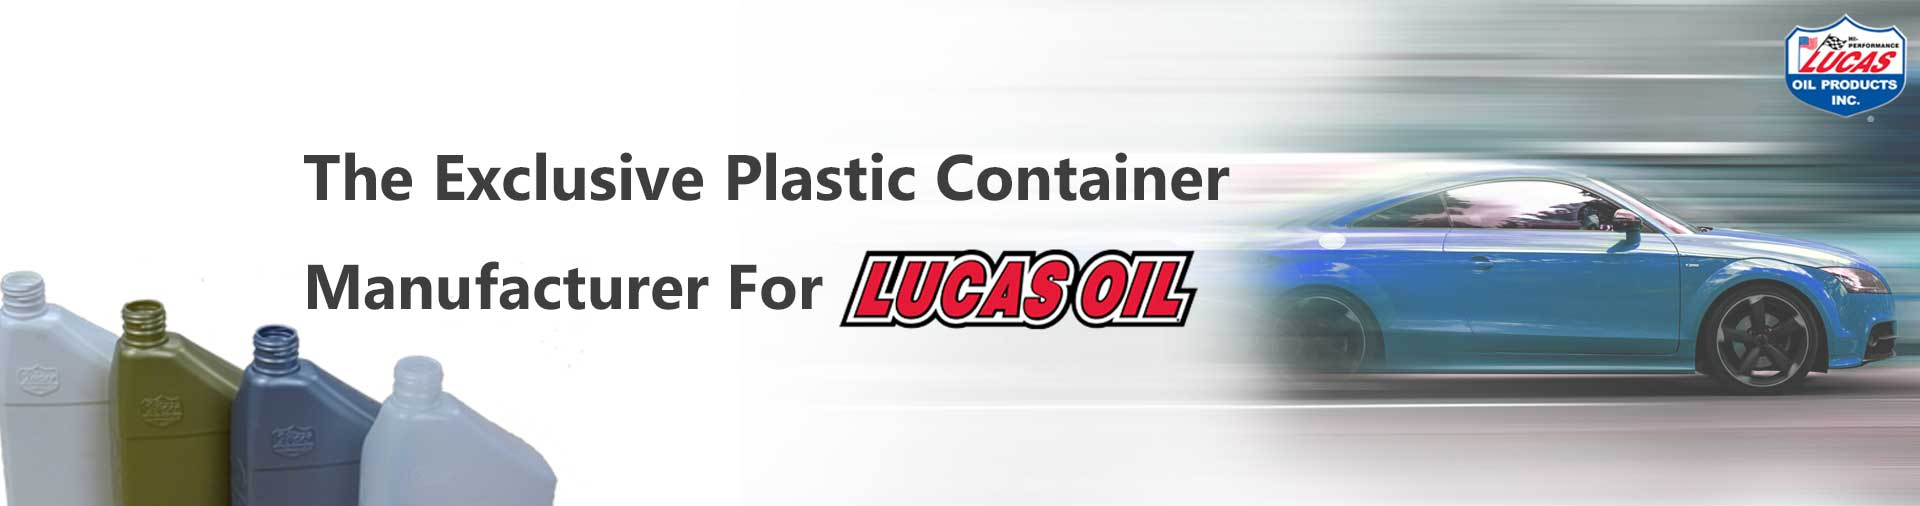 The Exclusive Plastic Container  Manufacturer For Lucas Oil